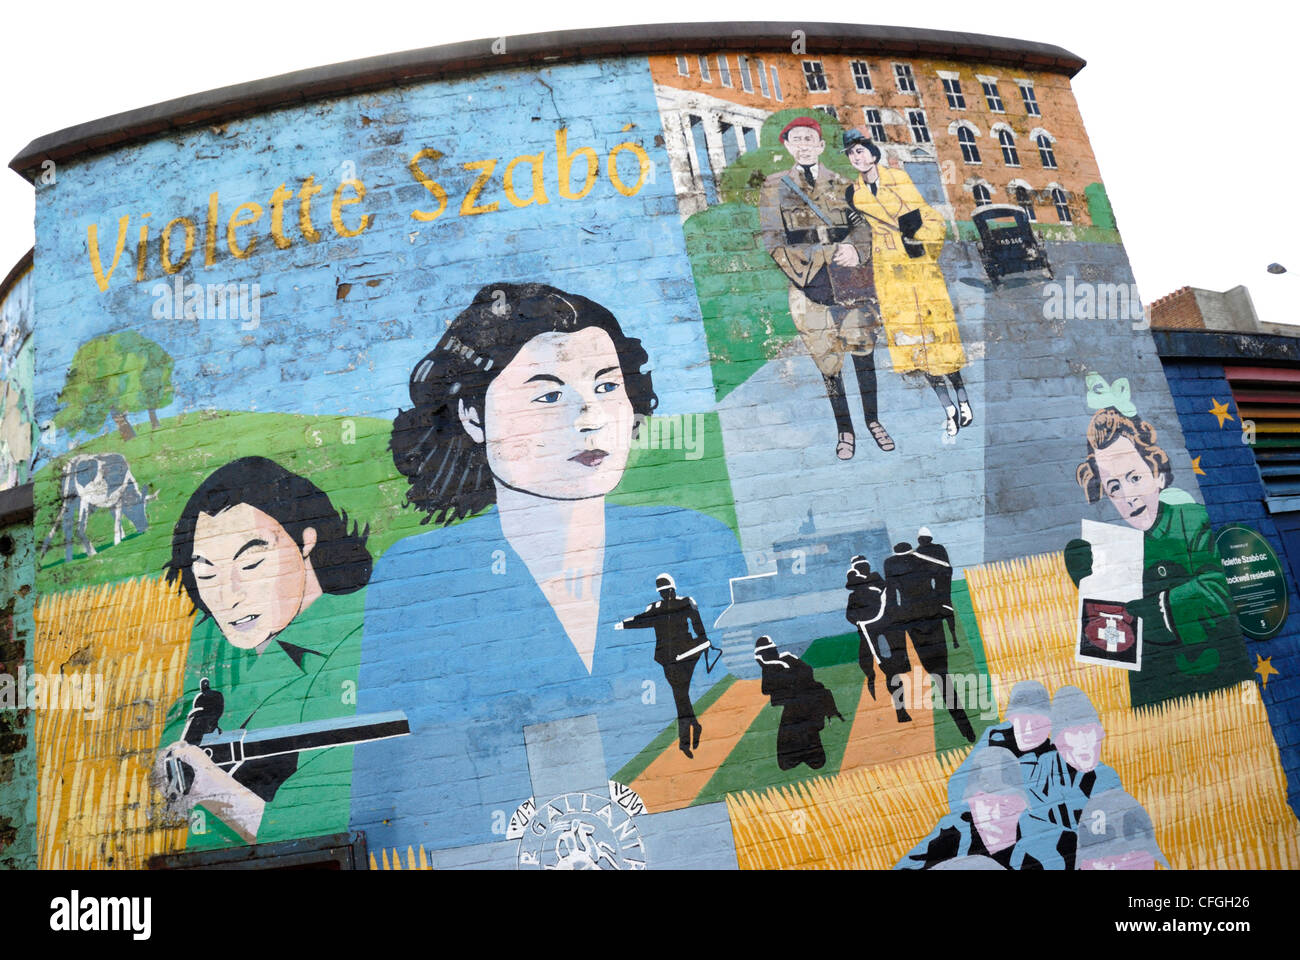 Mural commemorating the Second World War French-British secret agent Violette Szabo, Stockwell, London, England - Stock Image